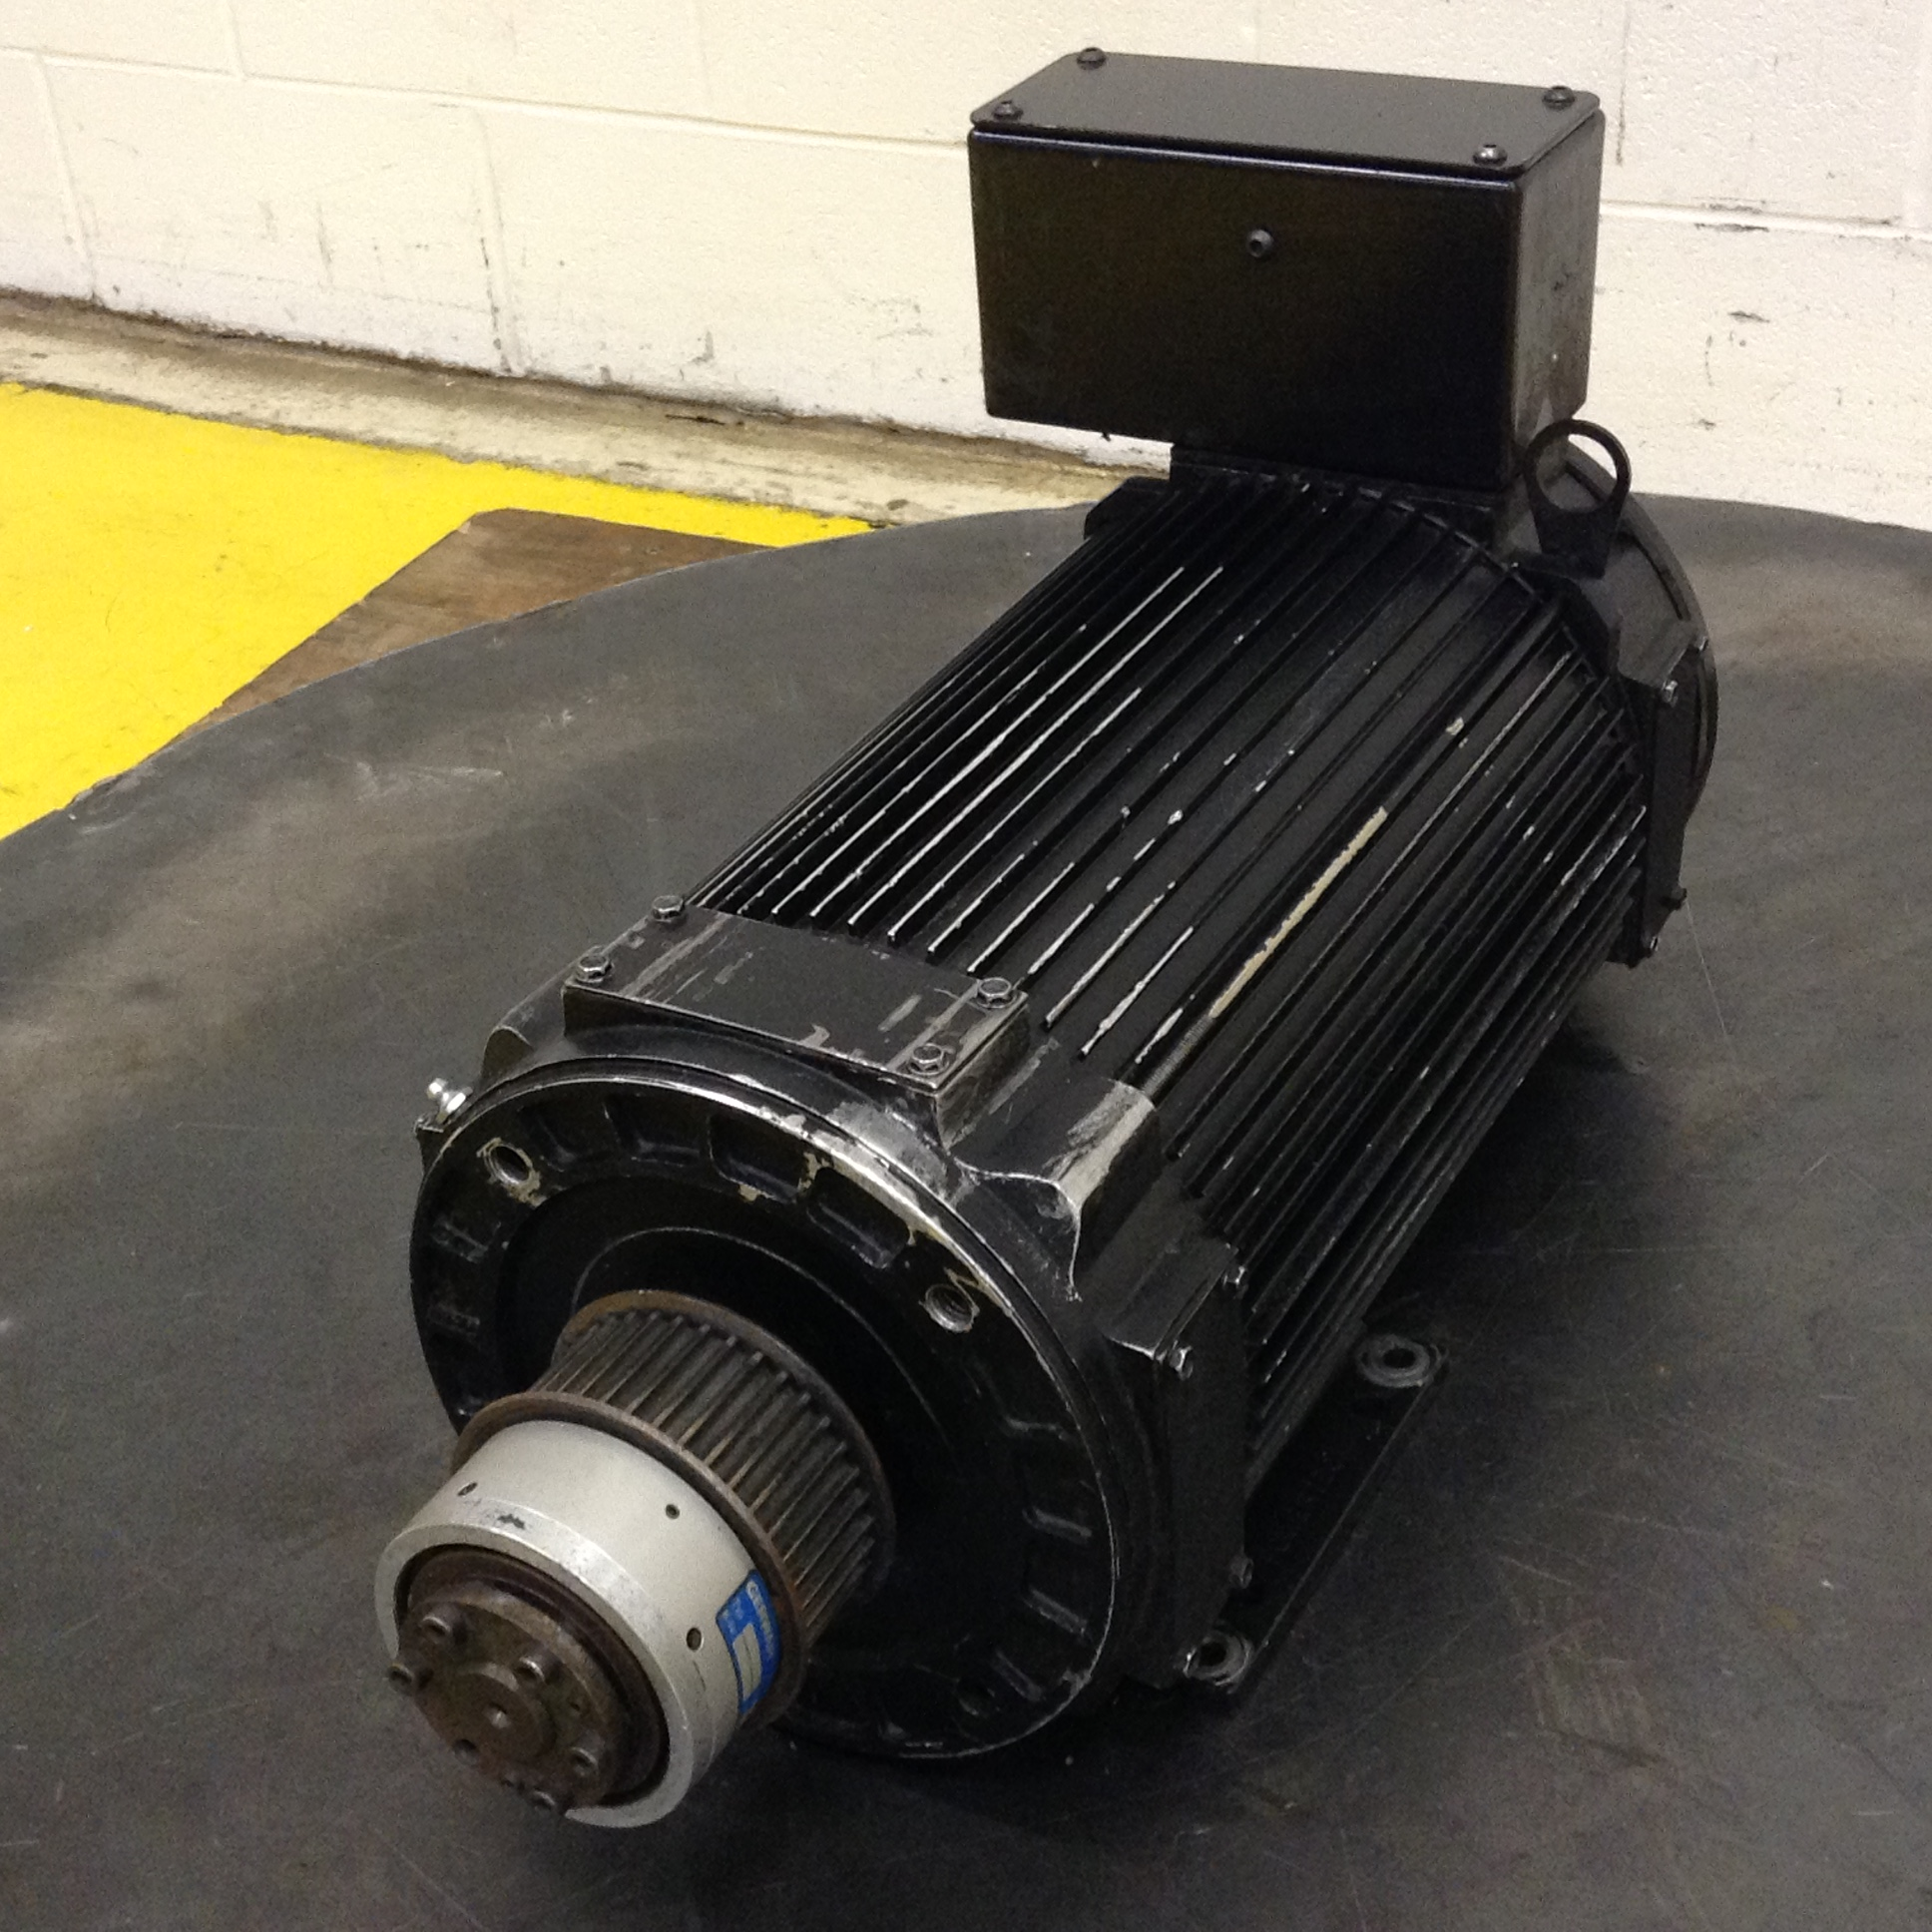 Powertec 10 Hp Brushless Dc Motor A18cma9010900050 Used 73360